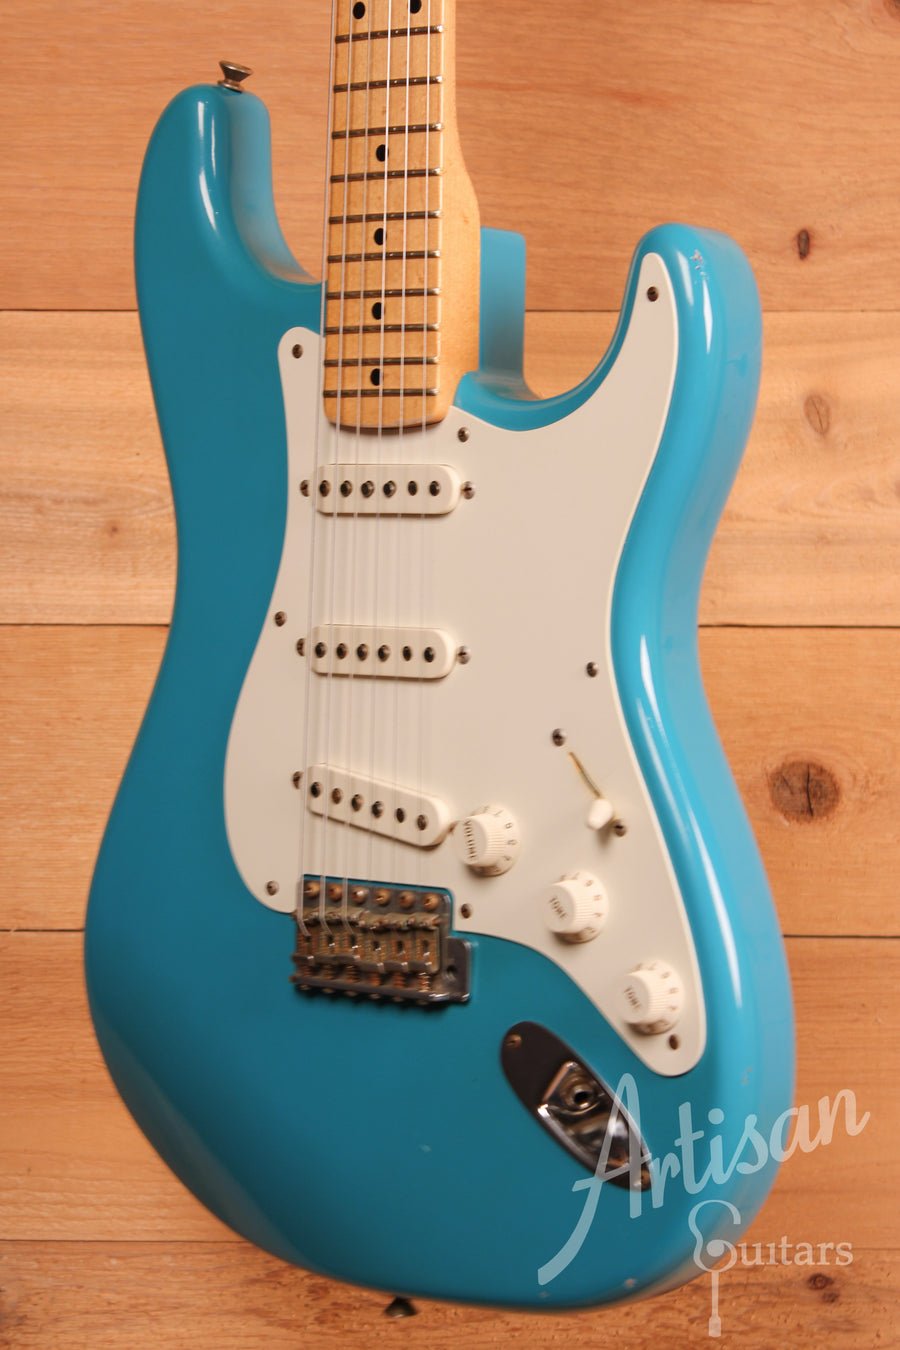 Fender Custom Shop Dave's Guitars 25th Anniversary Stratocaster Relic Taos Turqoise Finish Pre-Owned 2007 ID-11356